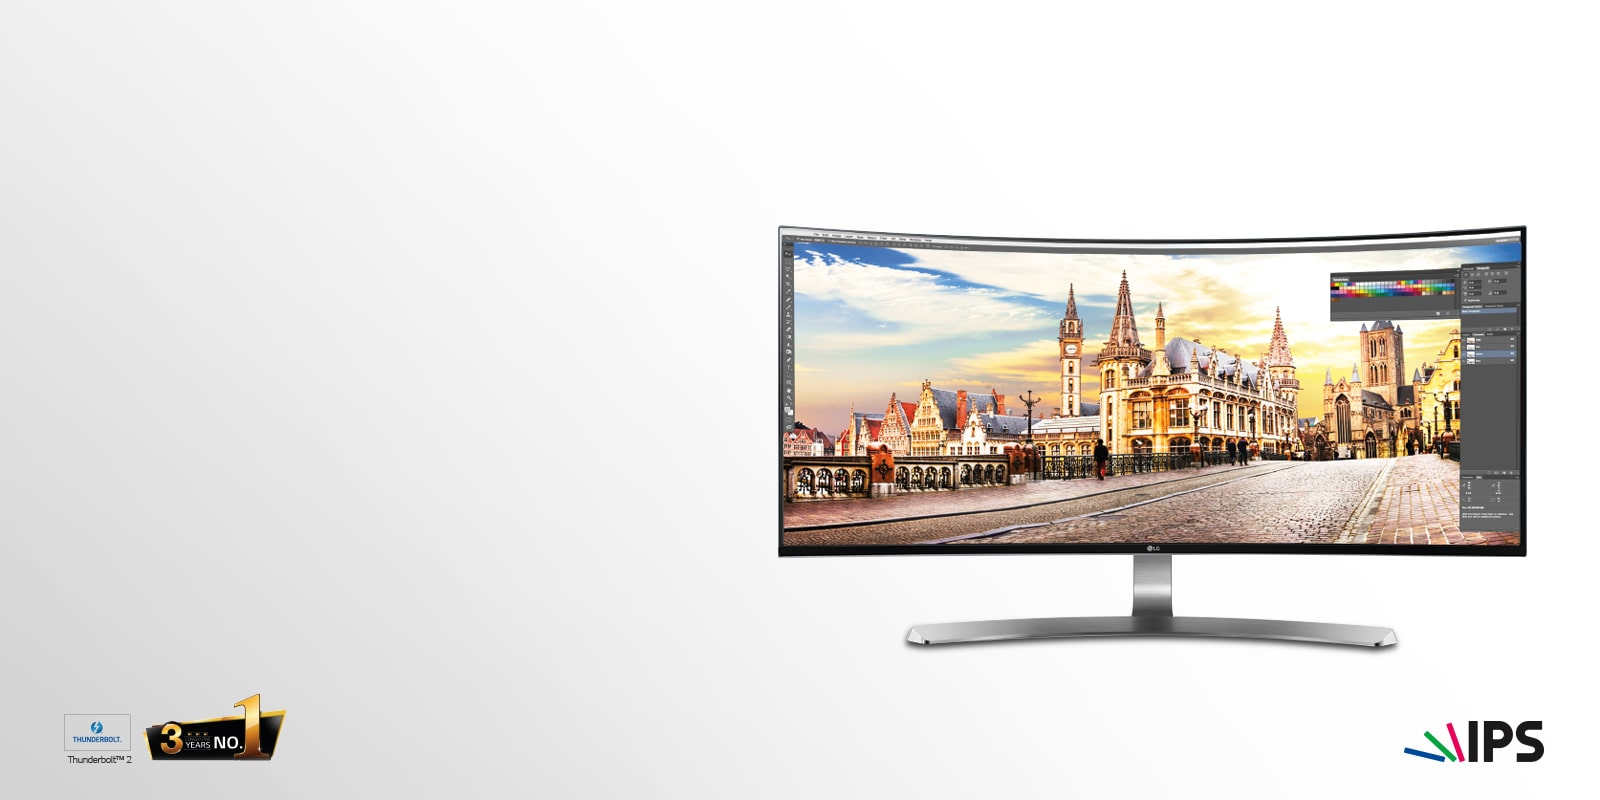 Ultra_Monitor_A_Without_Copy_1600x800